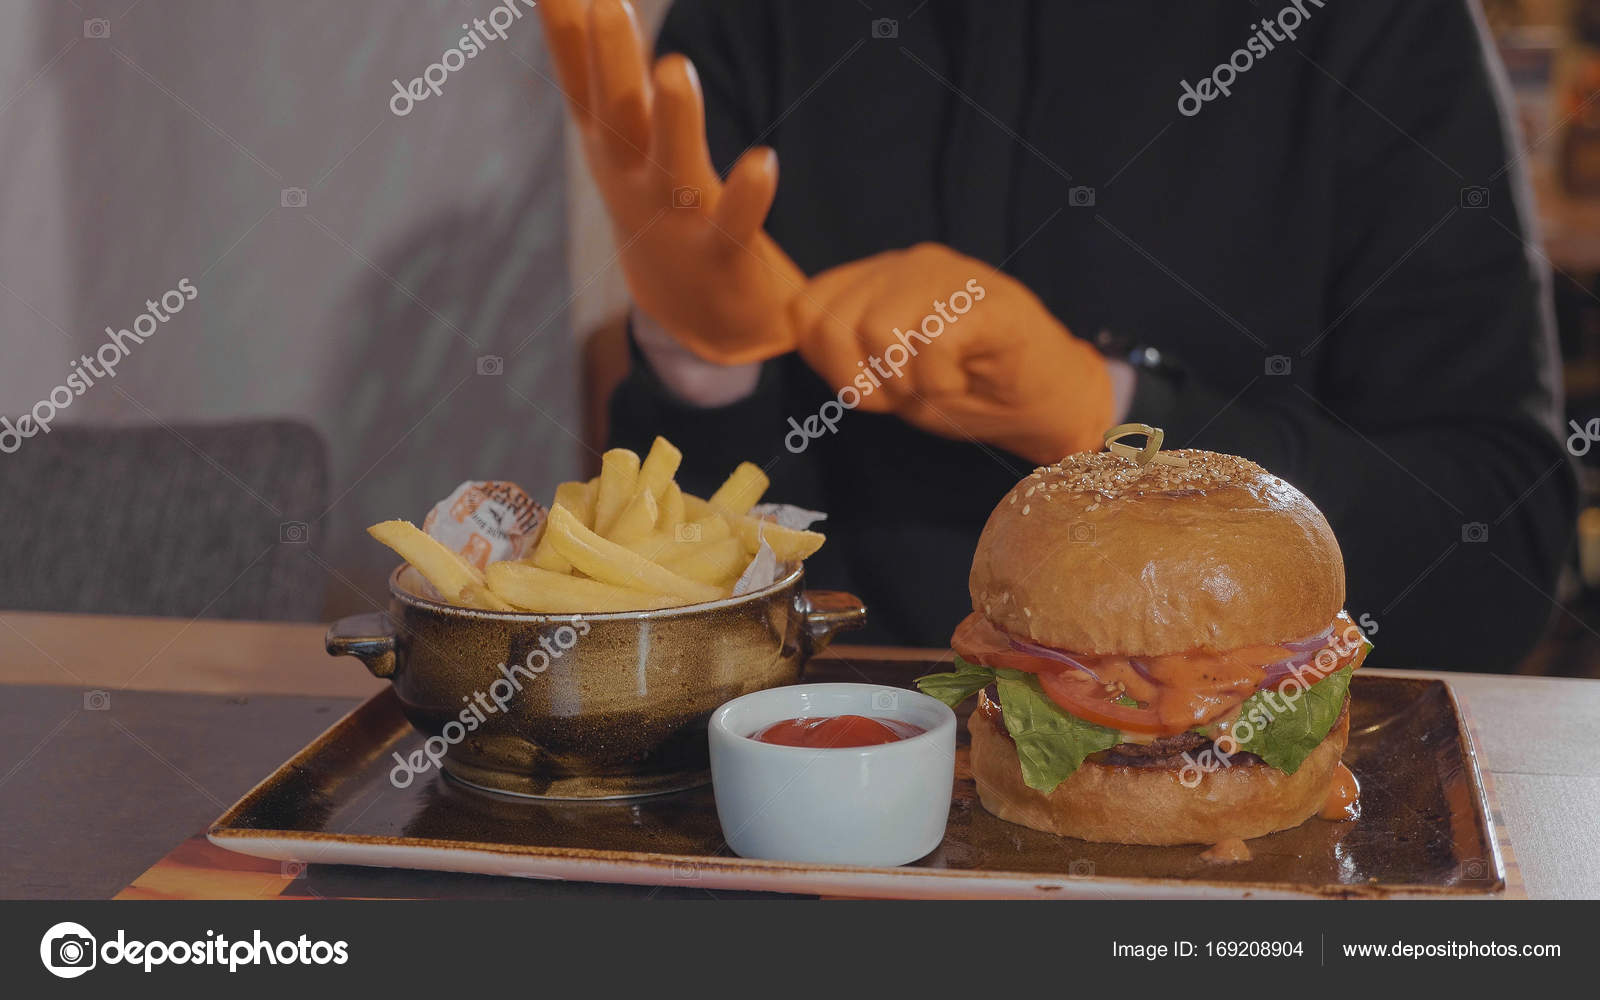 Man preparing for eating burger and french fries at fast